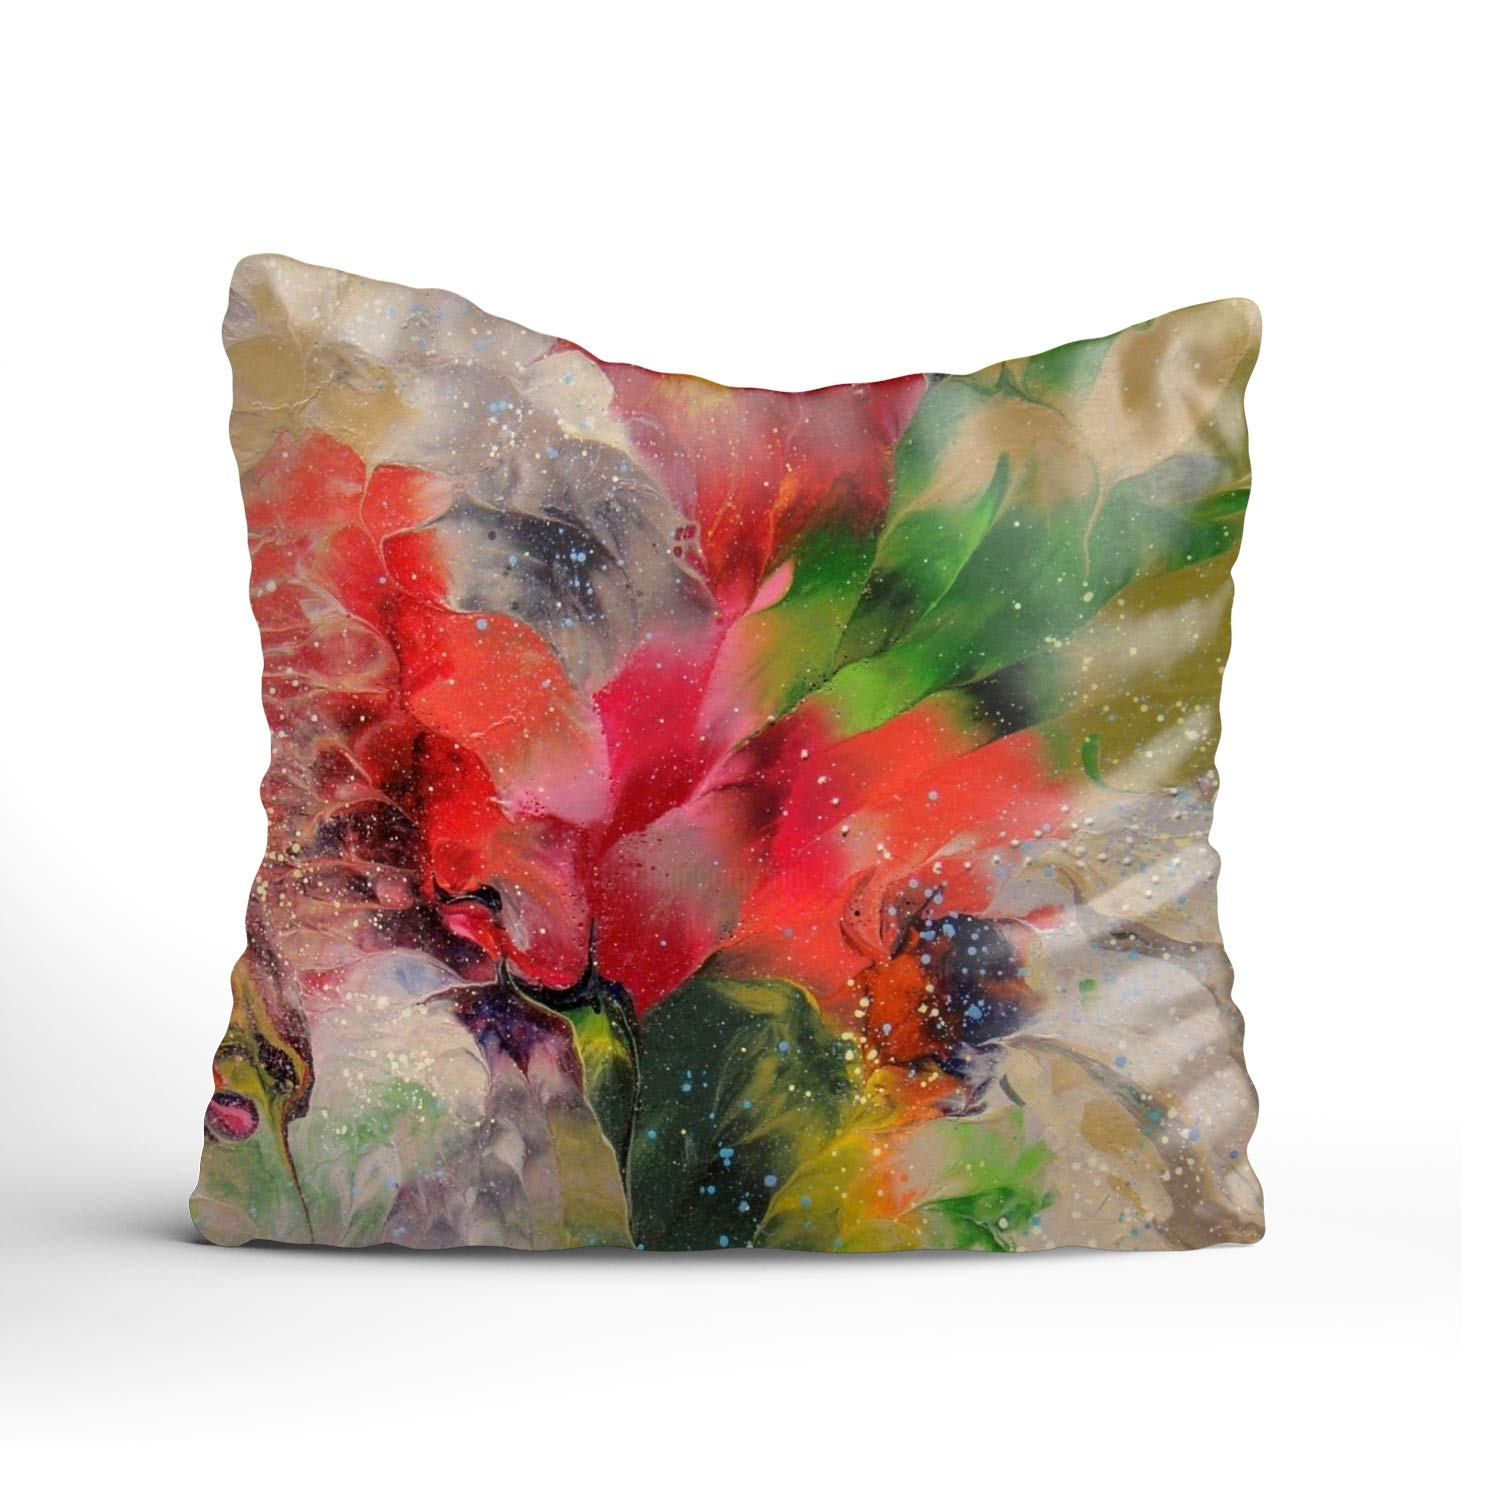 FunnyLife ラビットカートゥーン スローピローケース 亜麻布クッションカバー 車のソファ ホームデコレーション 16x16 16x16 Abstract Floral Small Painting3 B07GWV28GW